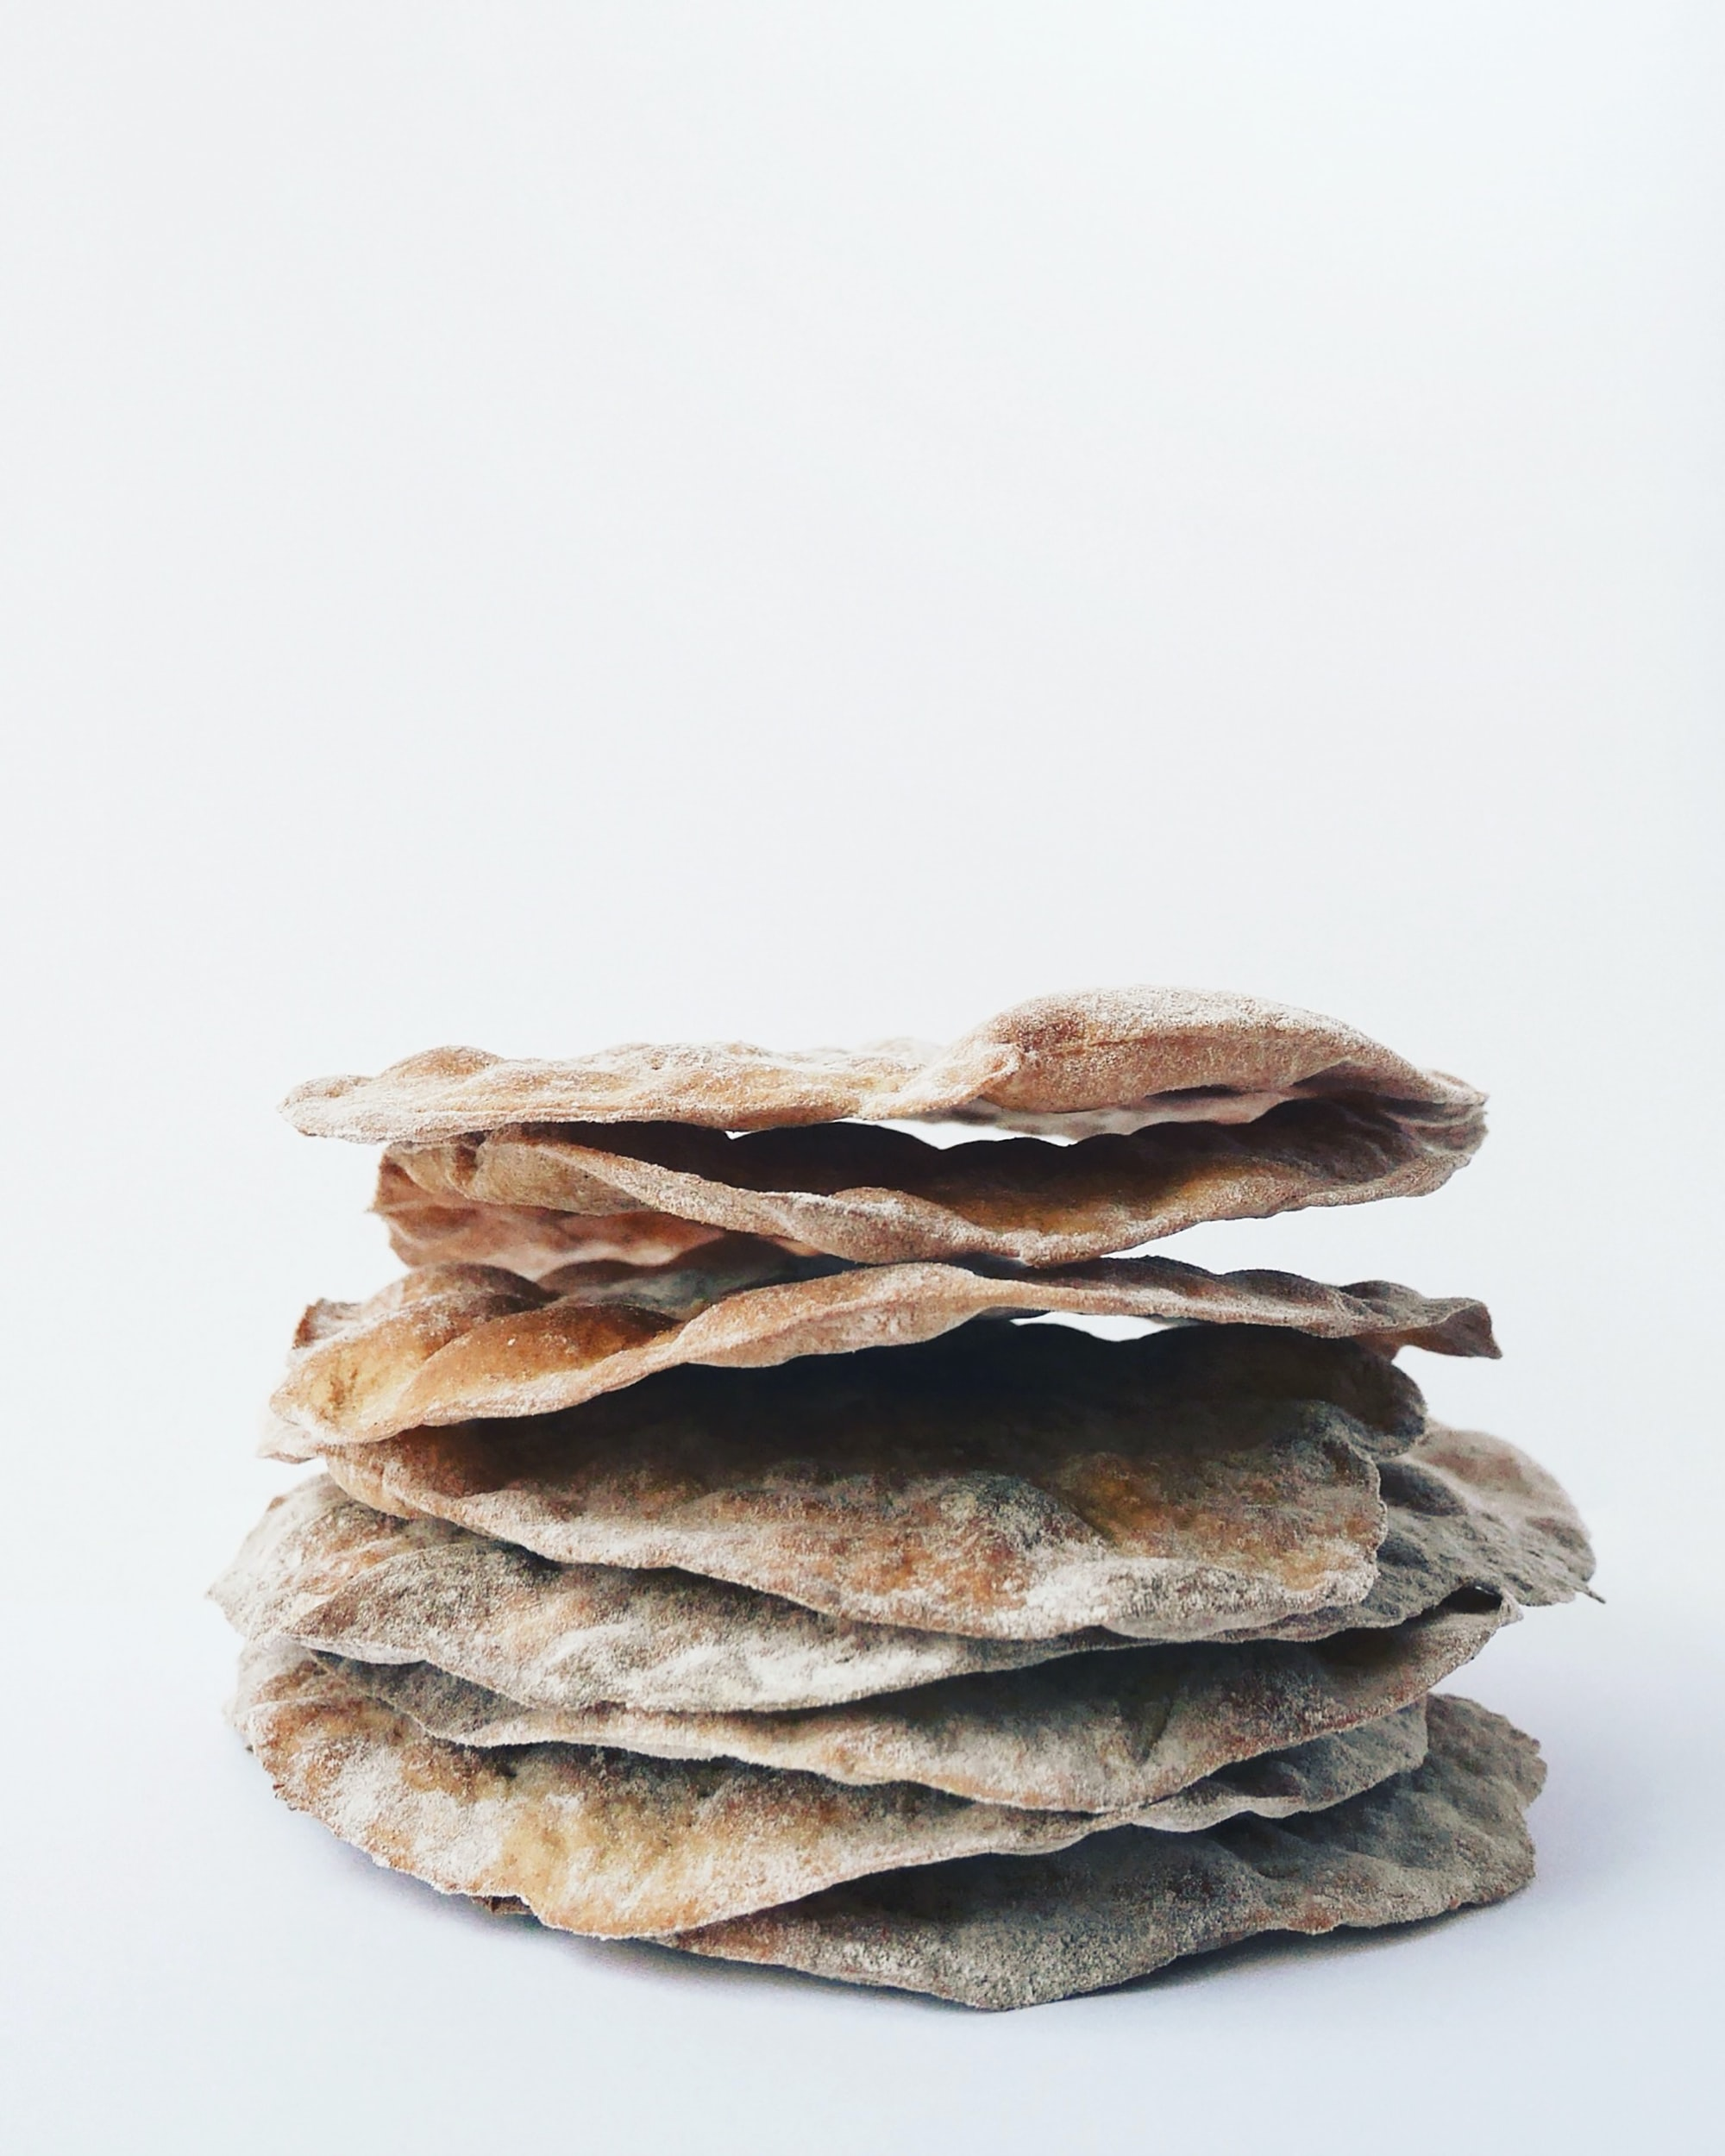 stack of flatbreads